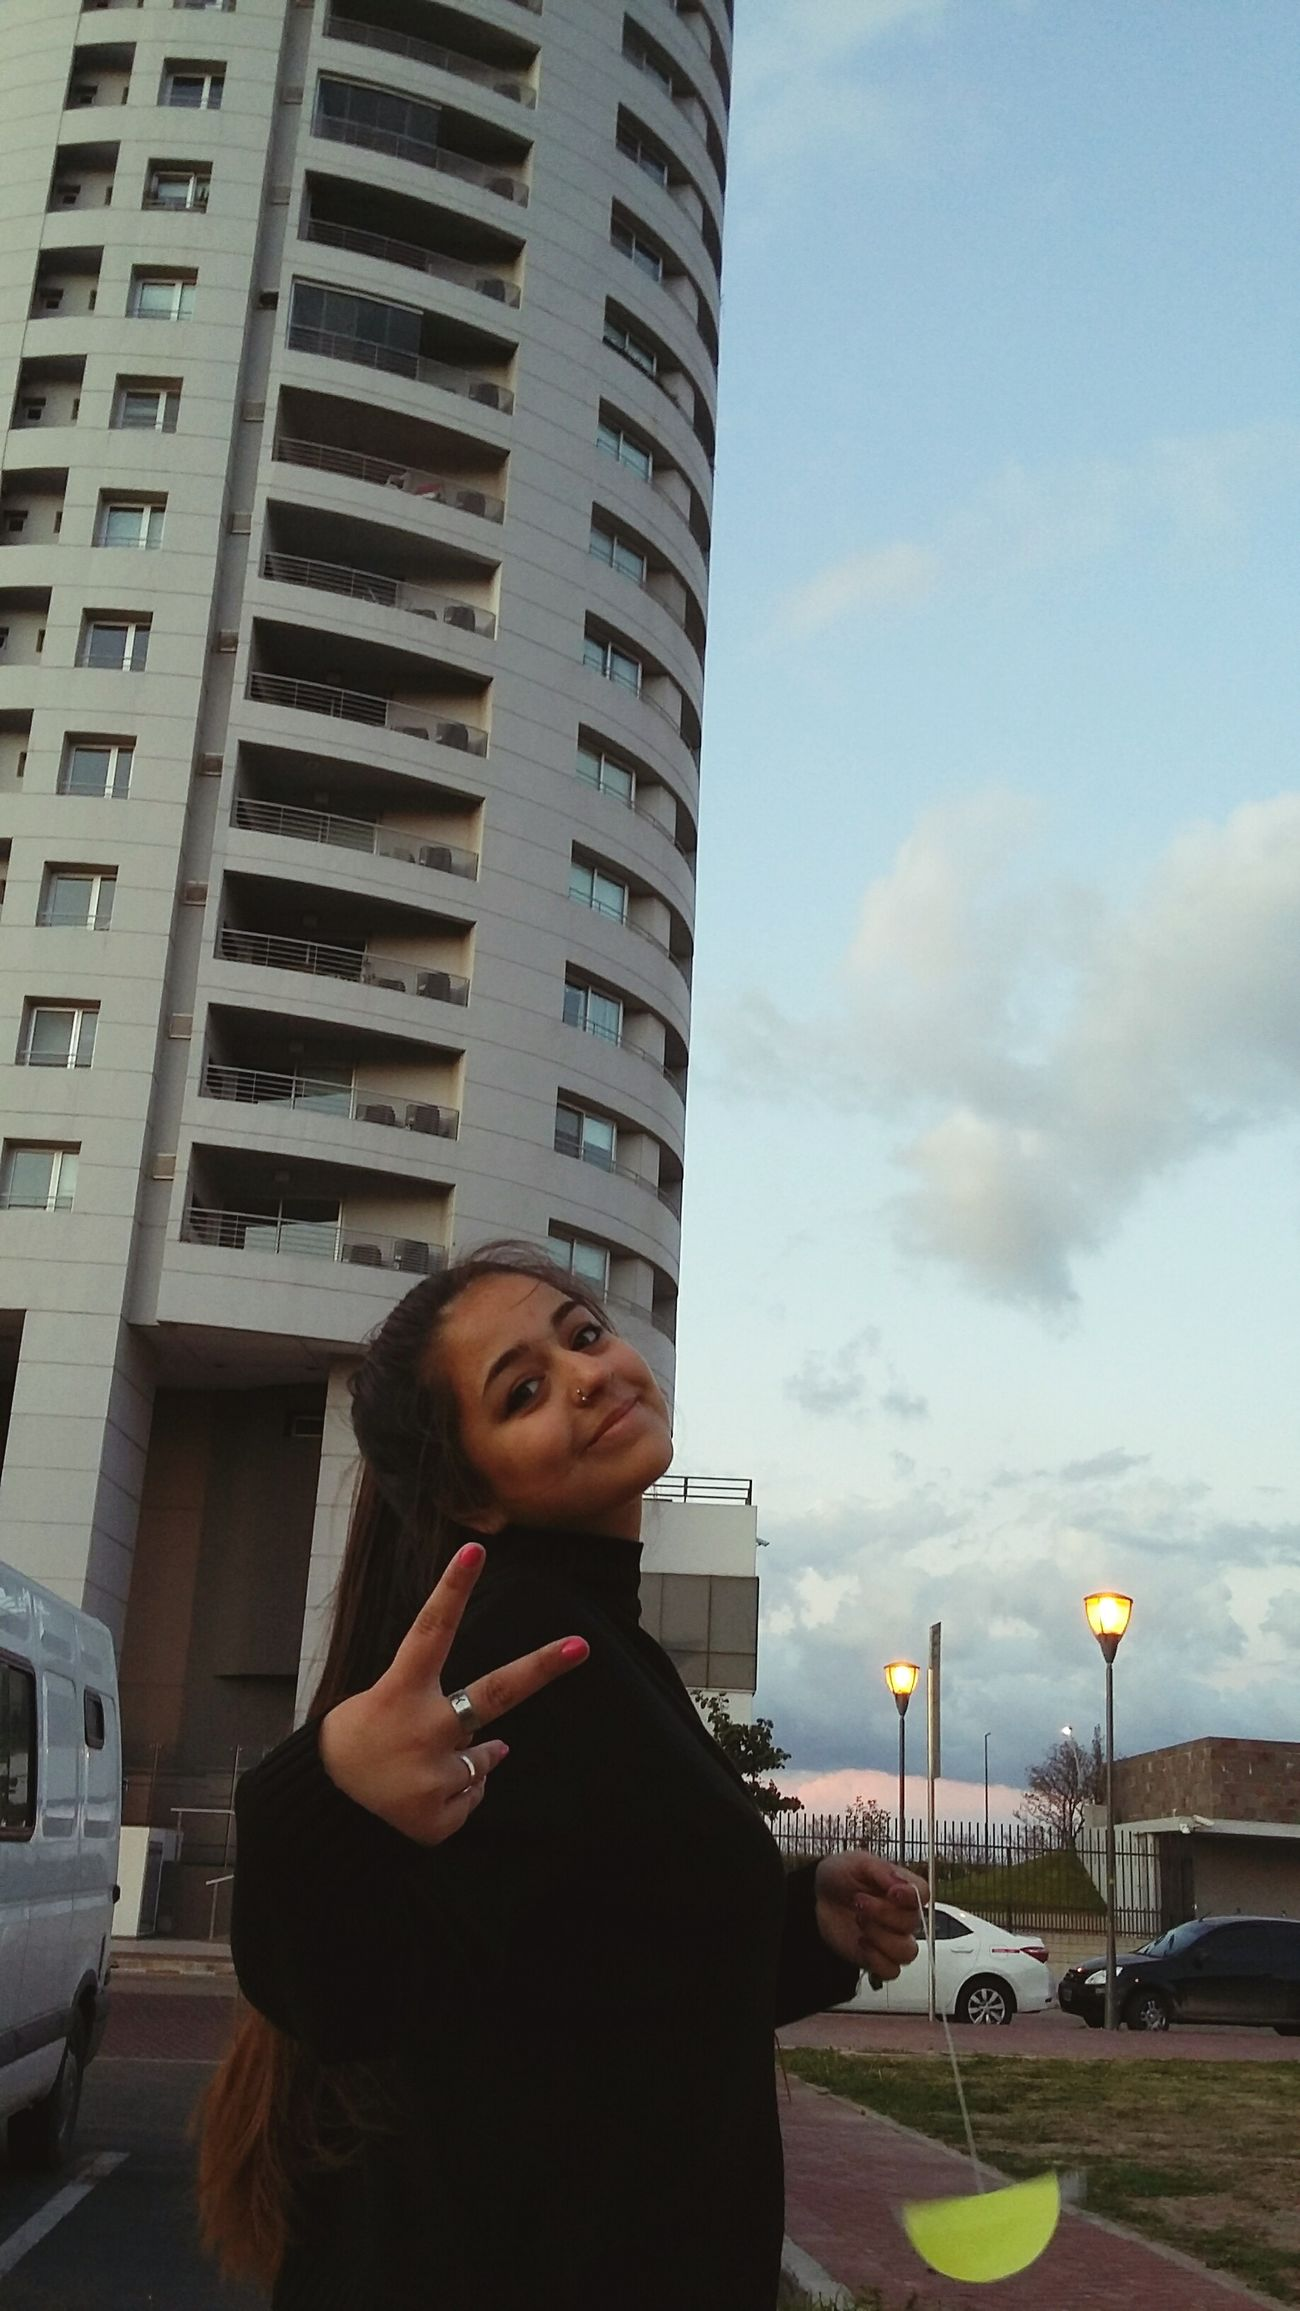 Edificio RosarioCity Beautiful Day Phone Girl Likeforlike Argentina